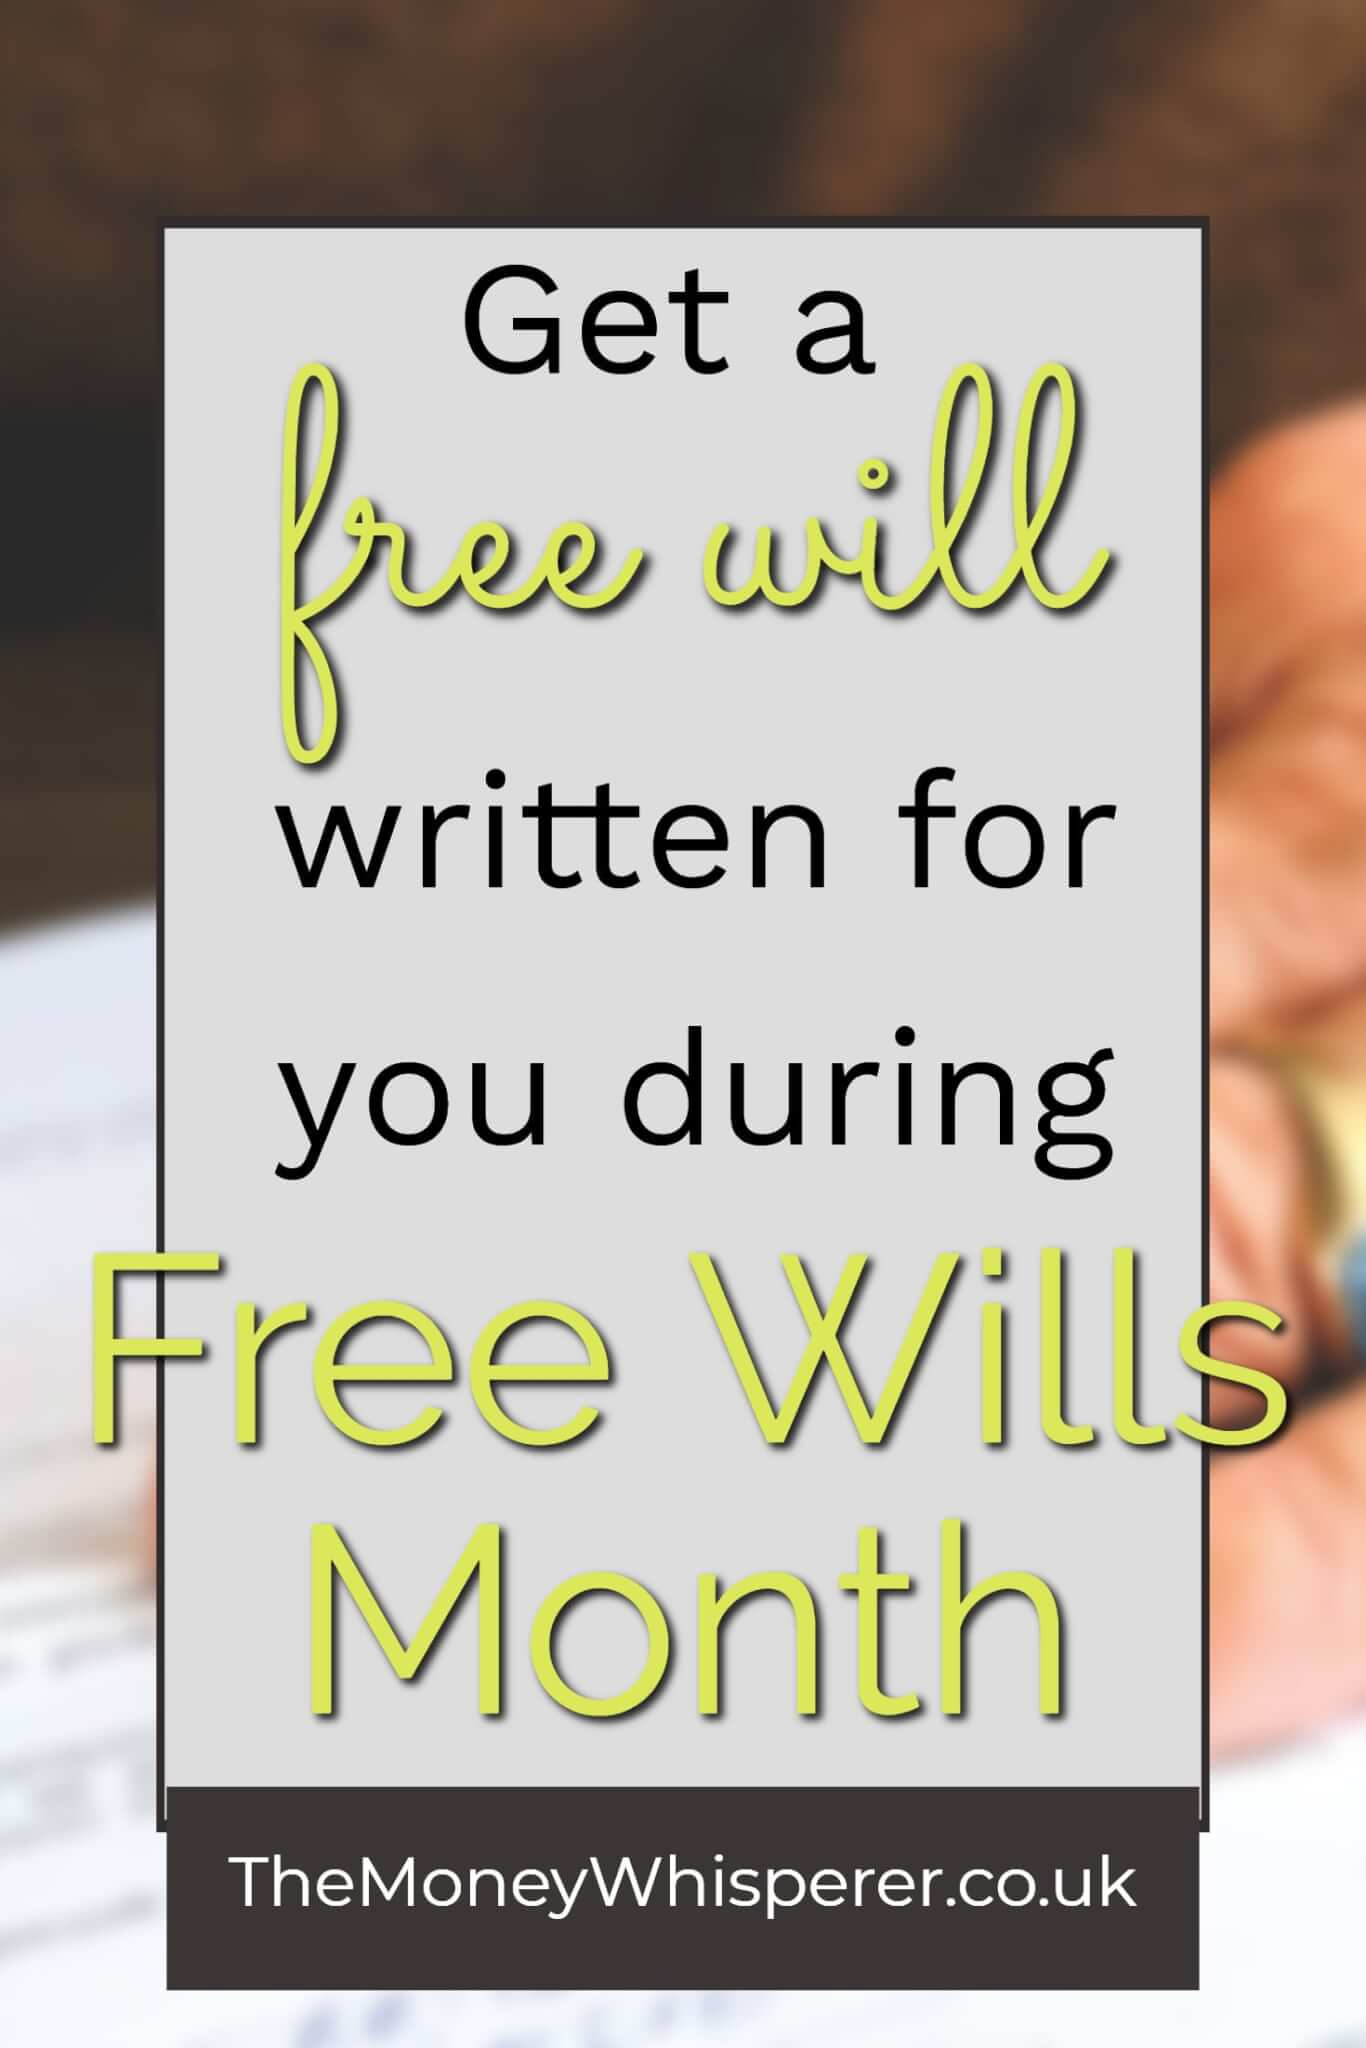 How to get a free will written for you during Free Wills Month #personalfinance #moneysavvy